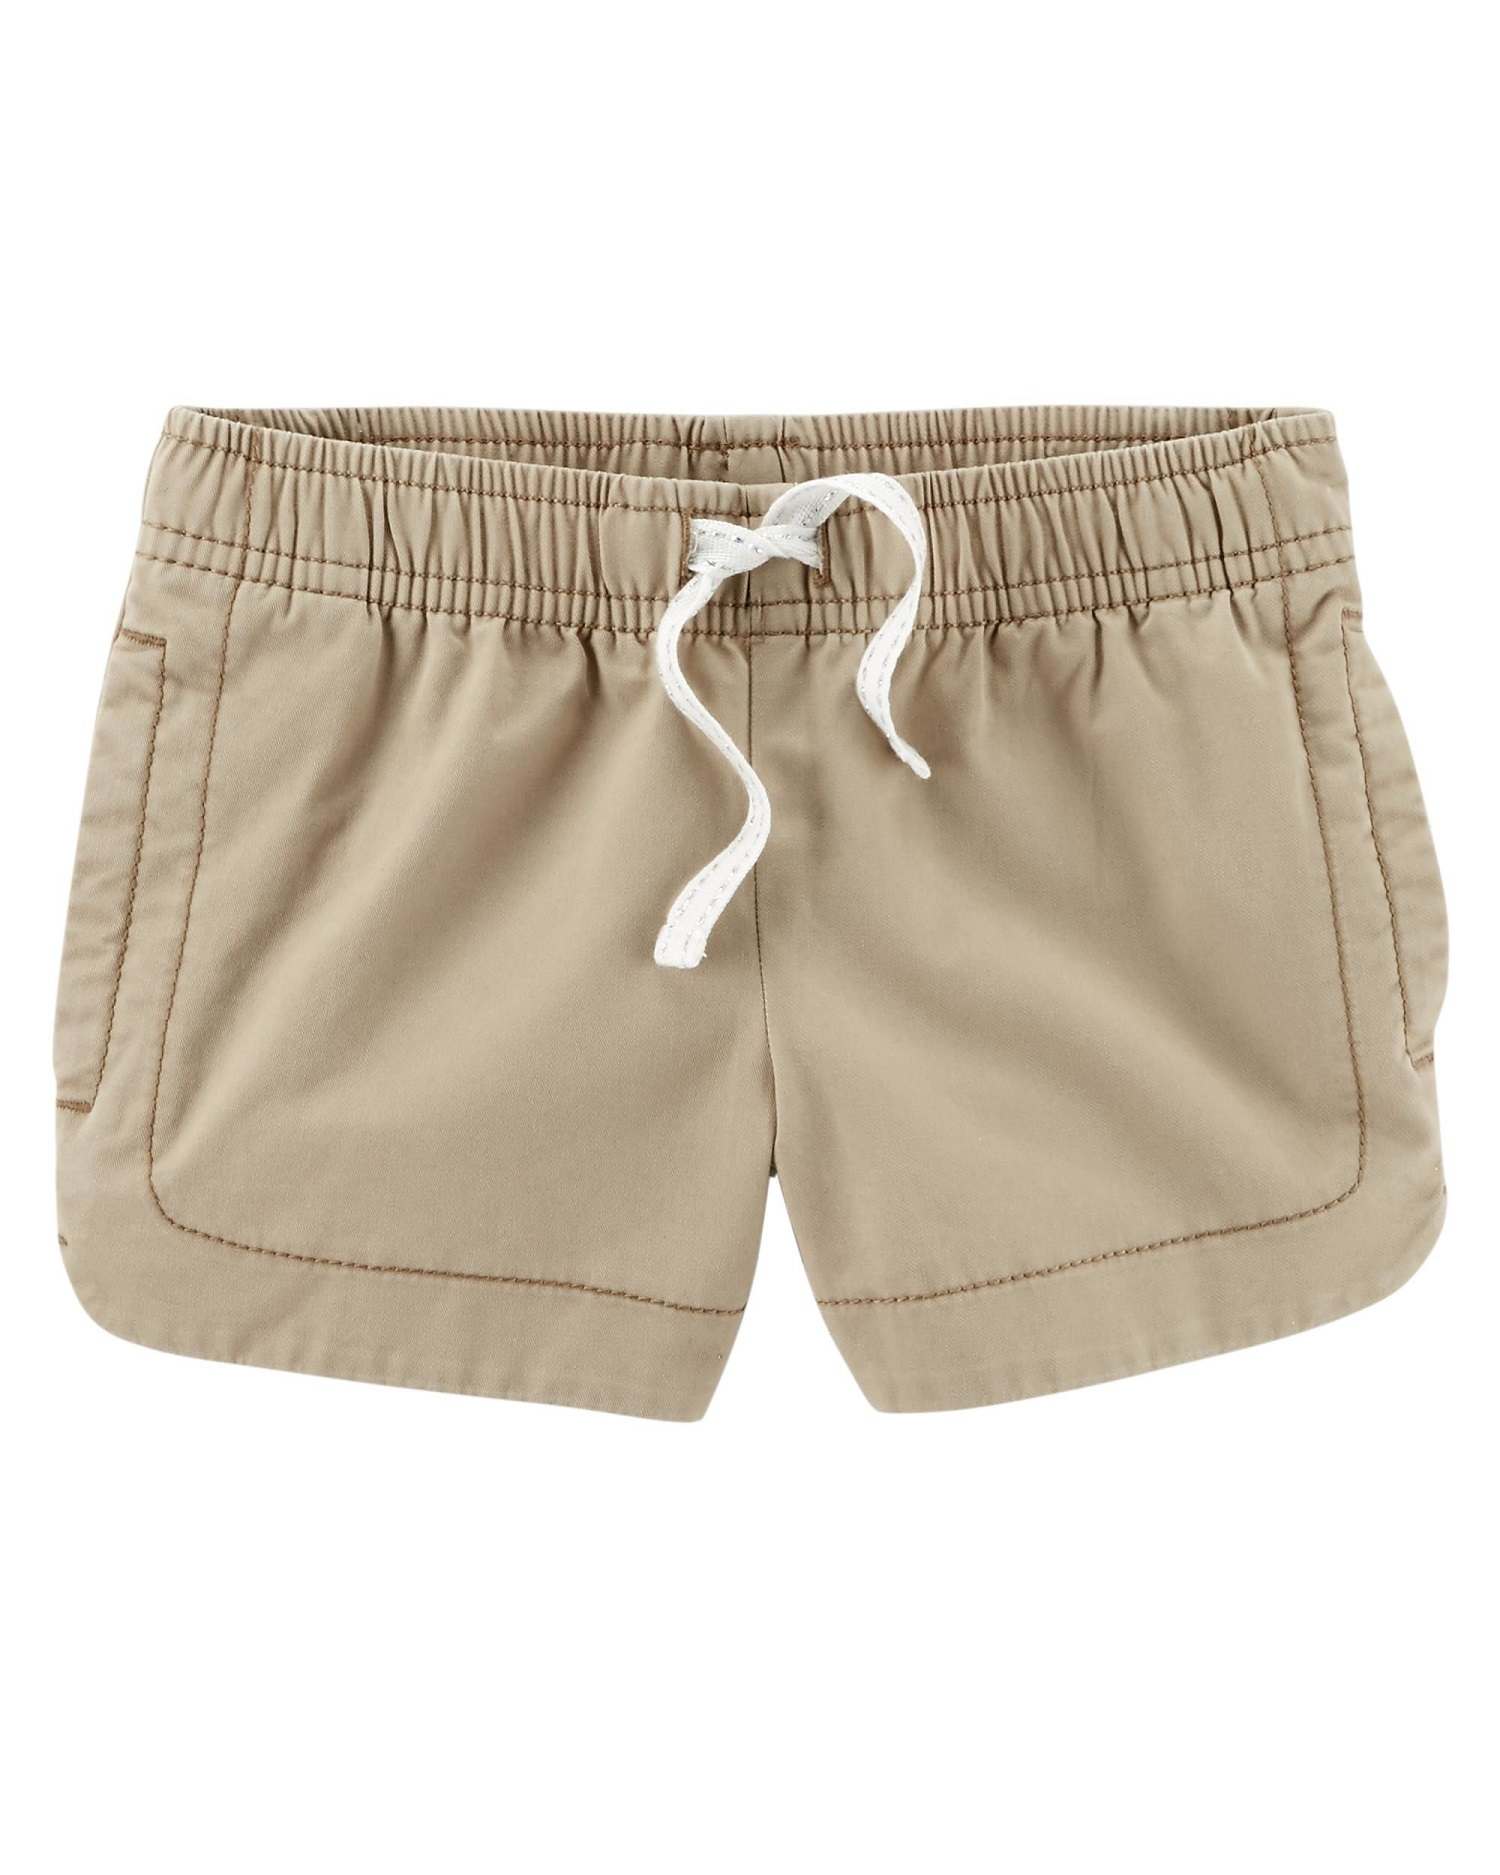 Carter's Little Girls' Easy Pull-On Twill Shorts, Khaki